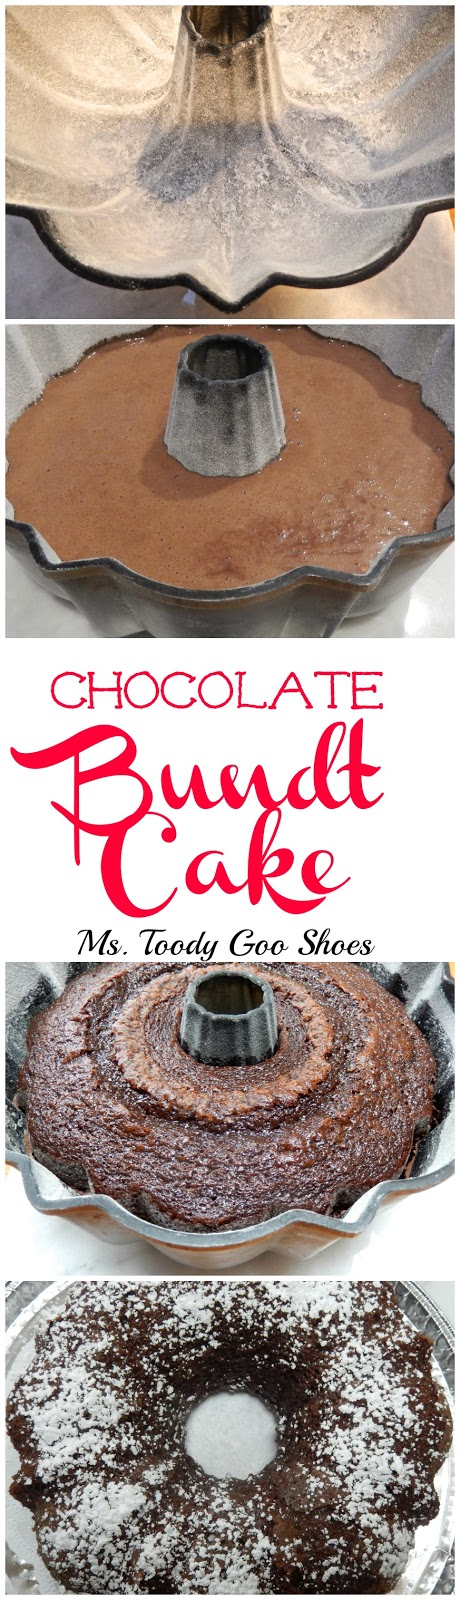 Chocolate Bundt Cake: Rich, dense and moist...so delicious!  -- Ms. Toody Goo Shoes